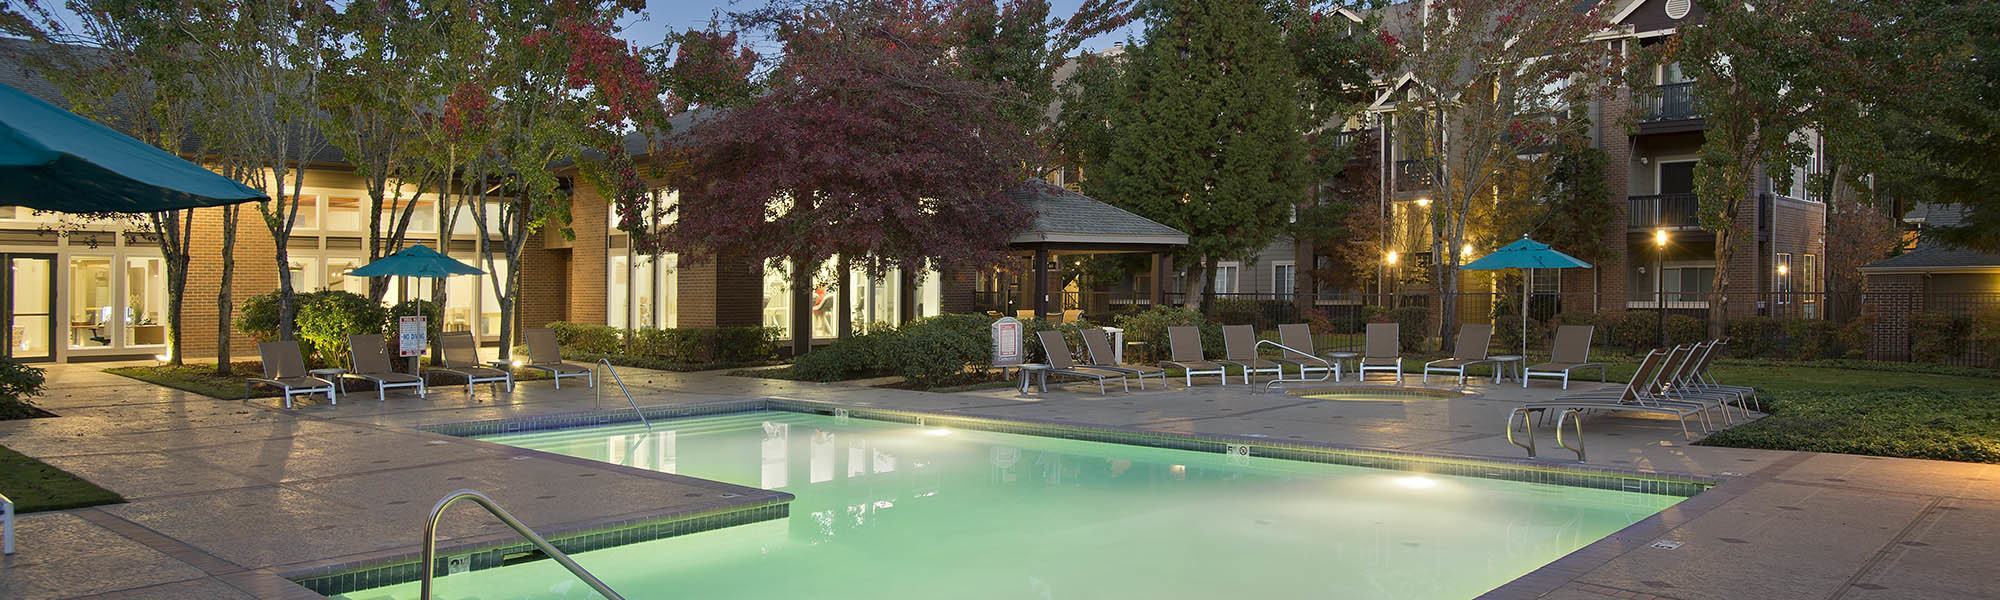 Learn about our neighborhood at Cortland Village Apartment Homes in Hillsboro, OR on our website